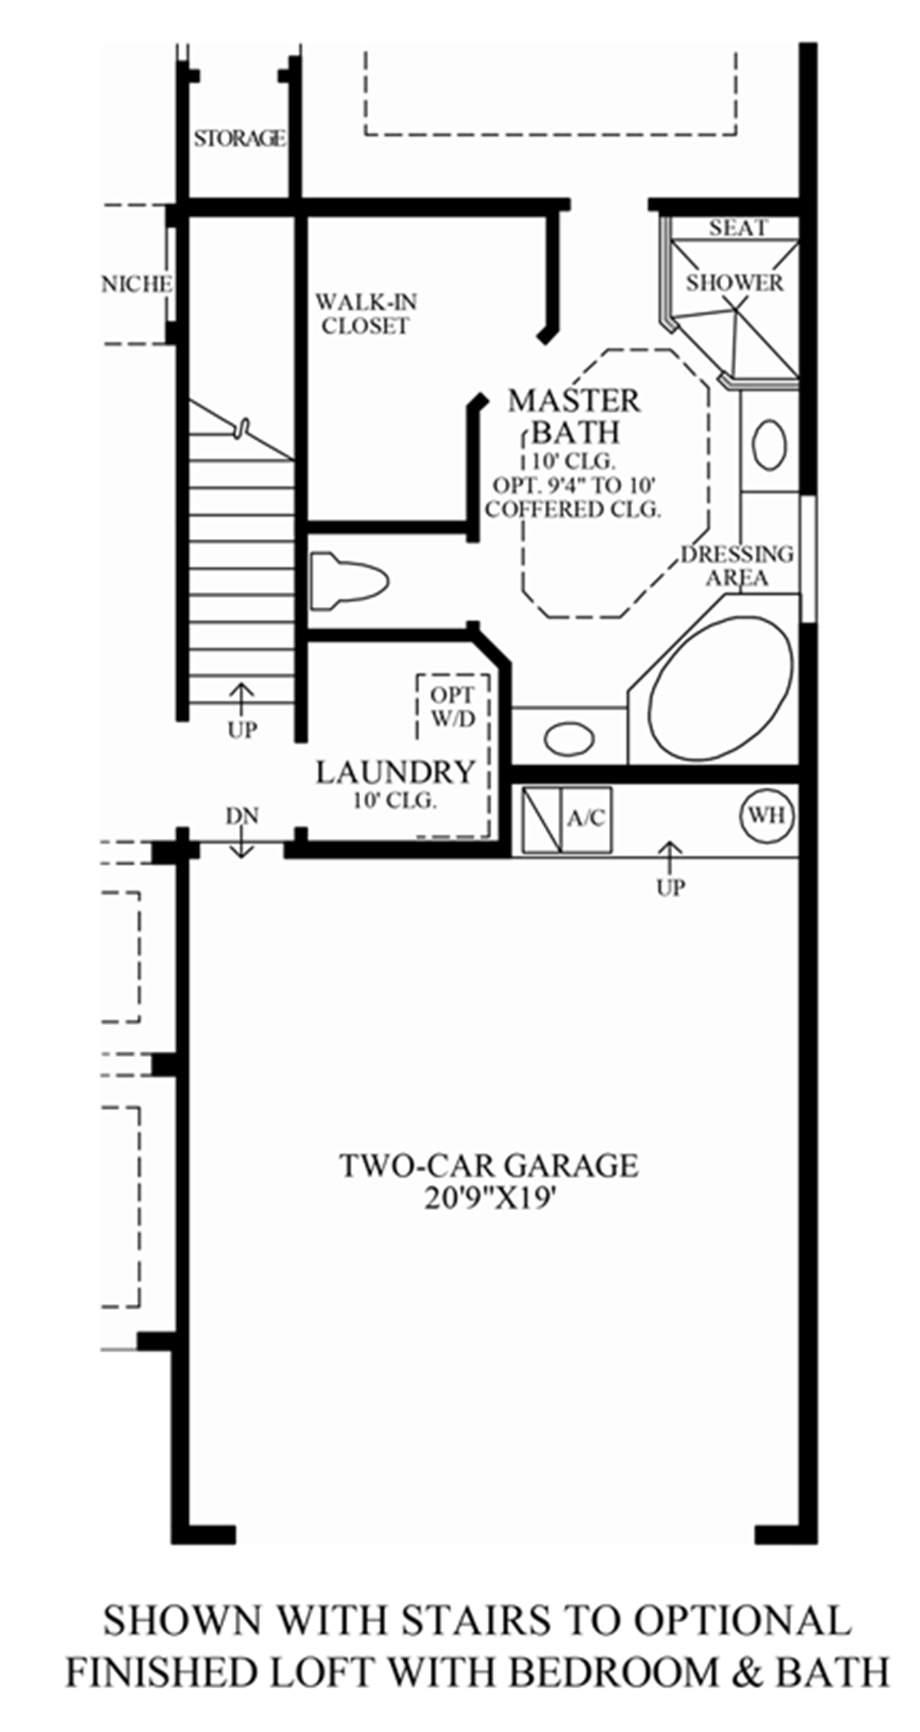 Stairs to Optional Finished Loft w/ Bed & Bath Floor Plan